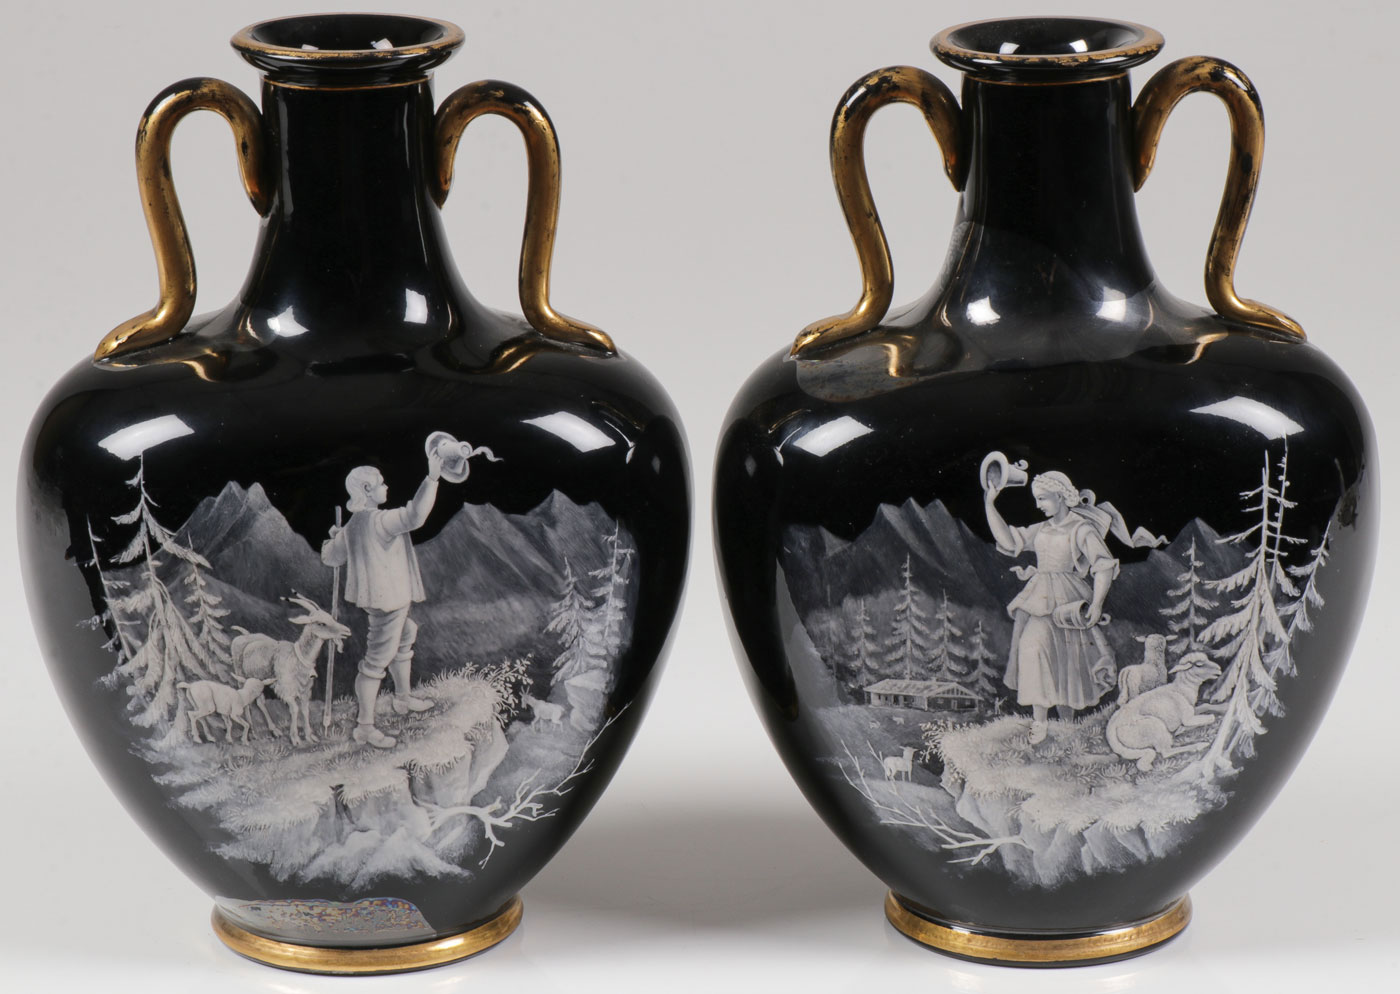 Lot 50 - A PAIR OF MARY GREGORY PILLOW VASES, C. 1880